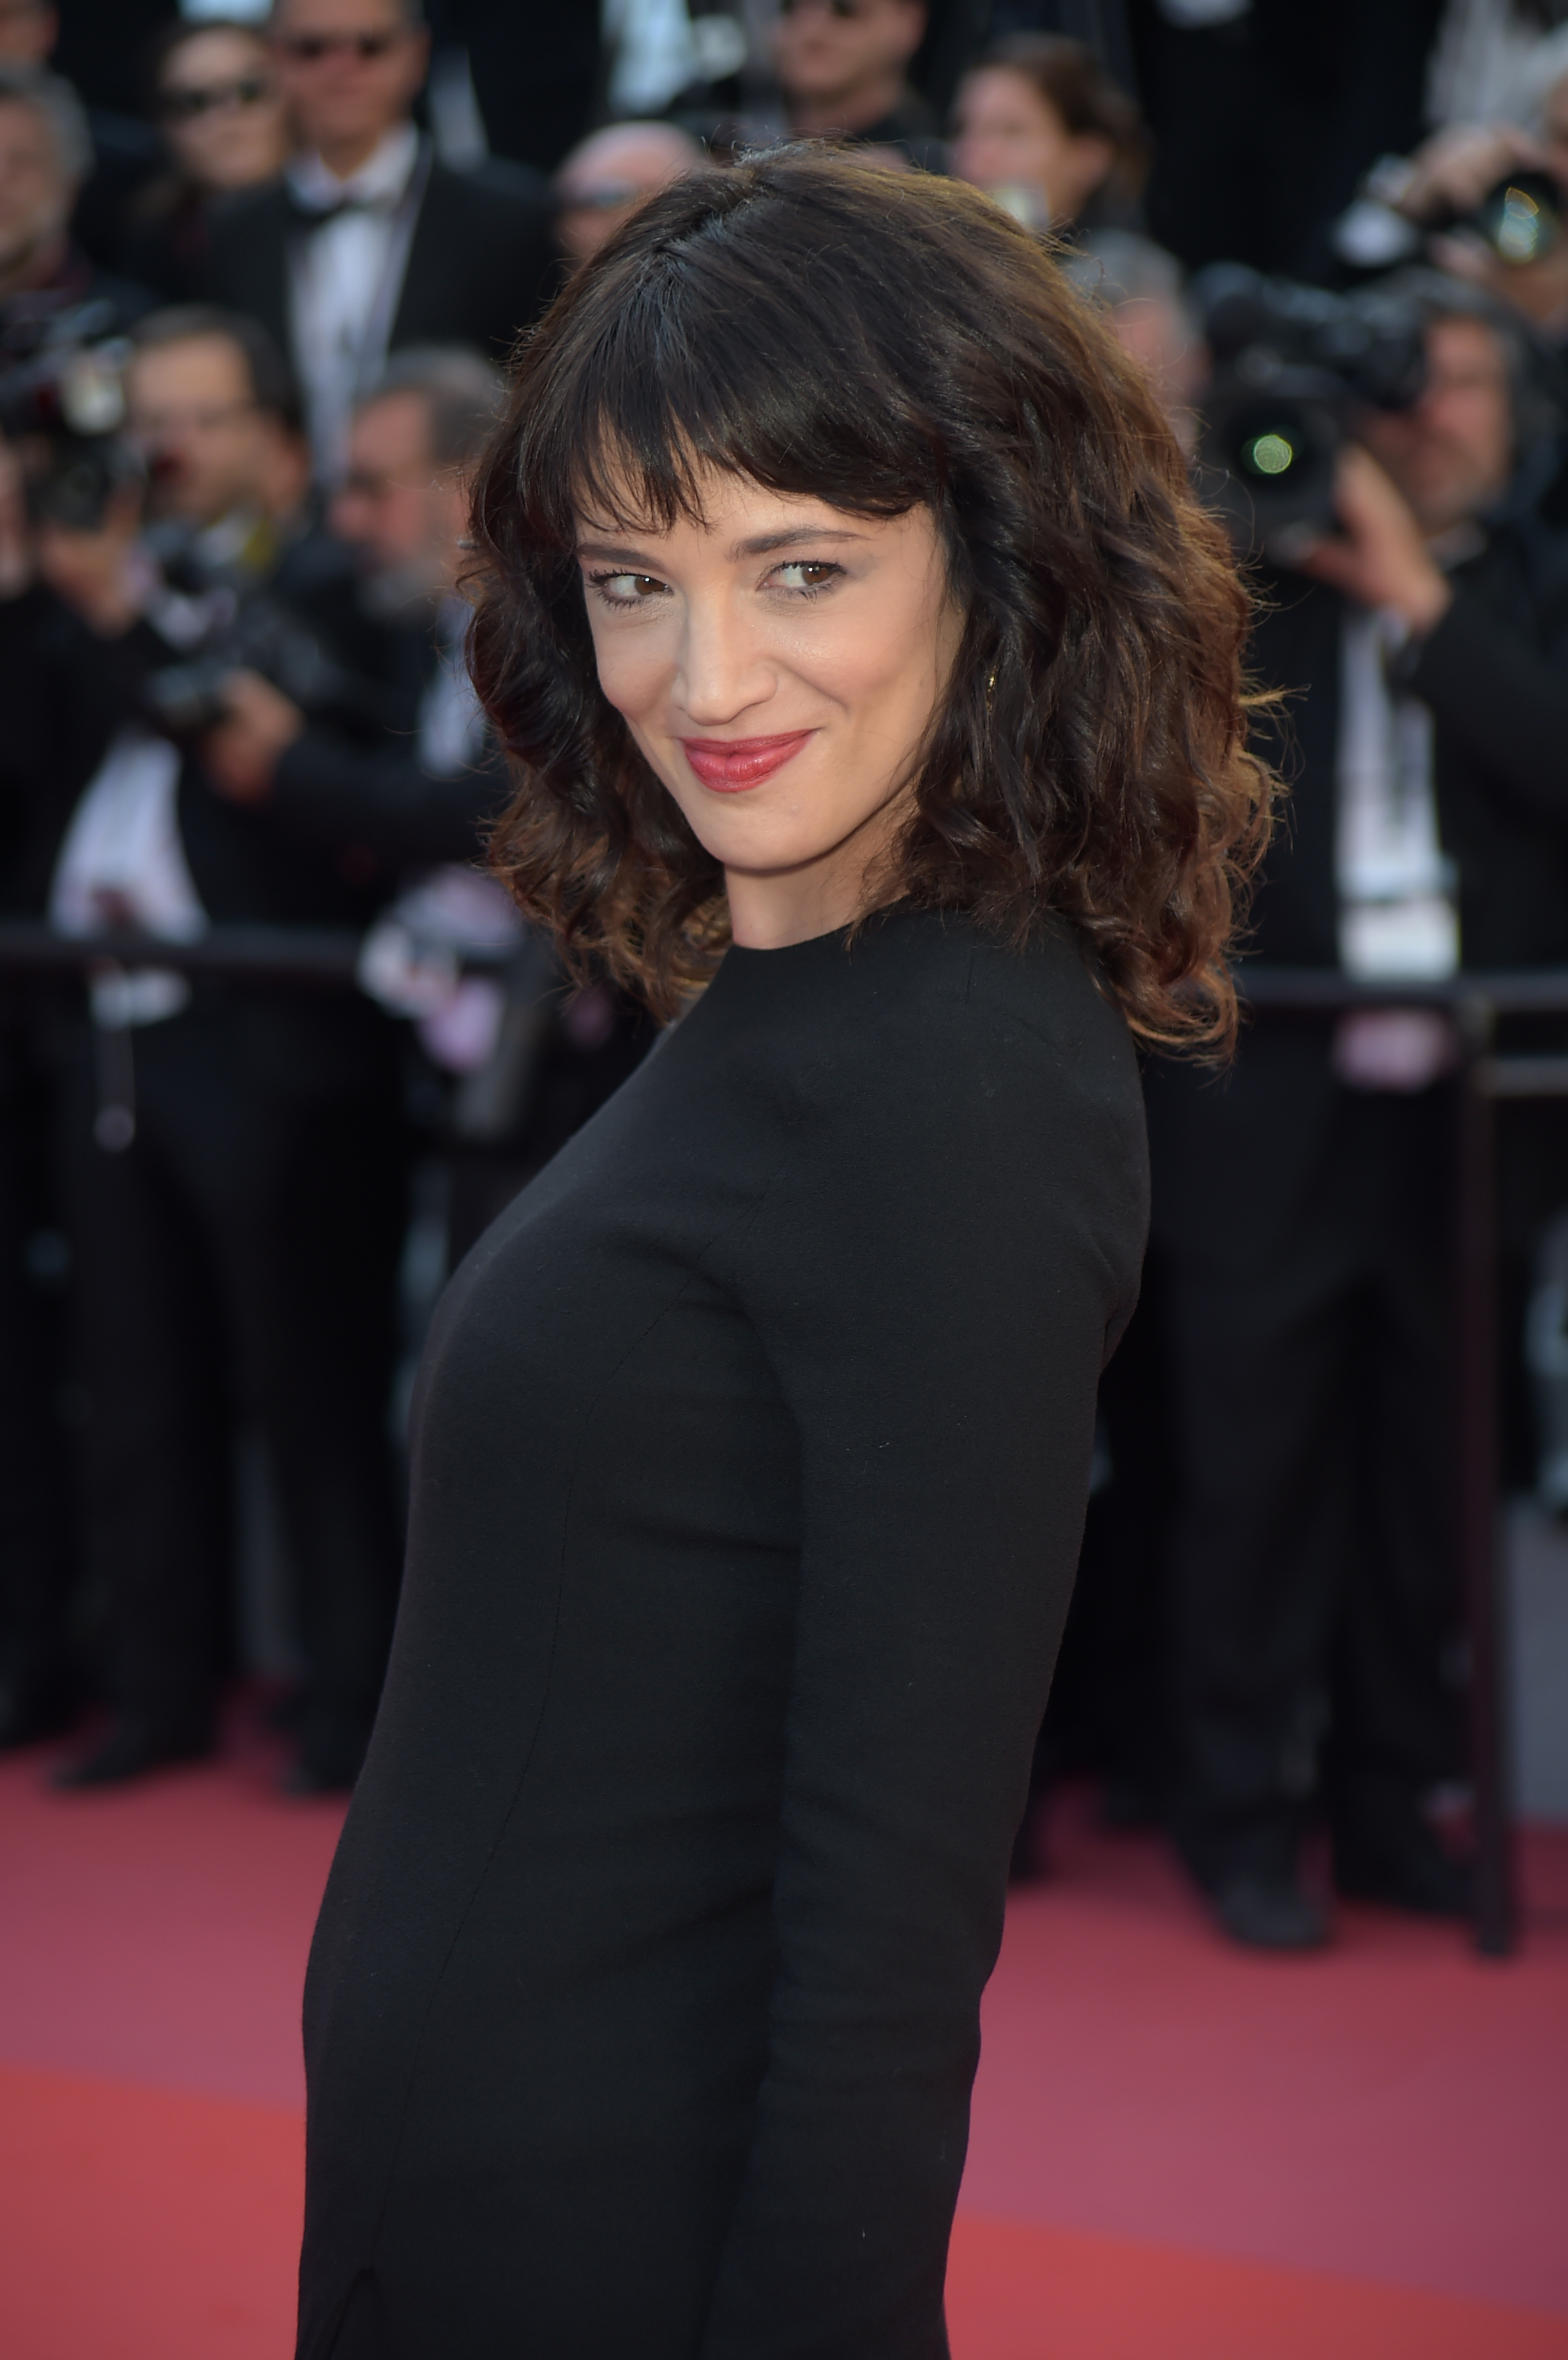 Asia Argento at the 71st annual Cannes Film Festival - 'The Man Who Killed Don Quixote' - Photocall. When: 19 May 2018 Credit: IPA/WENN.com